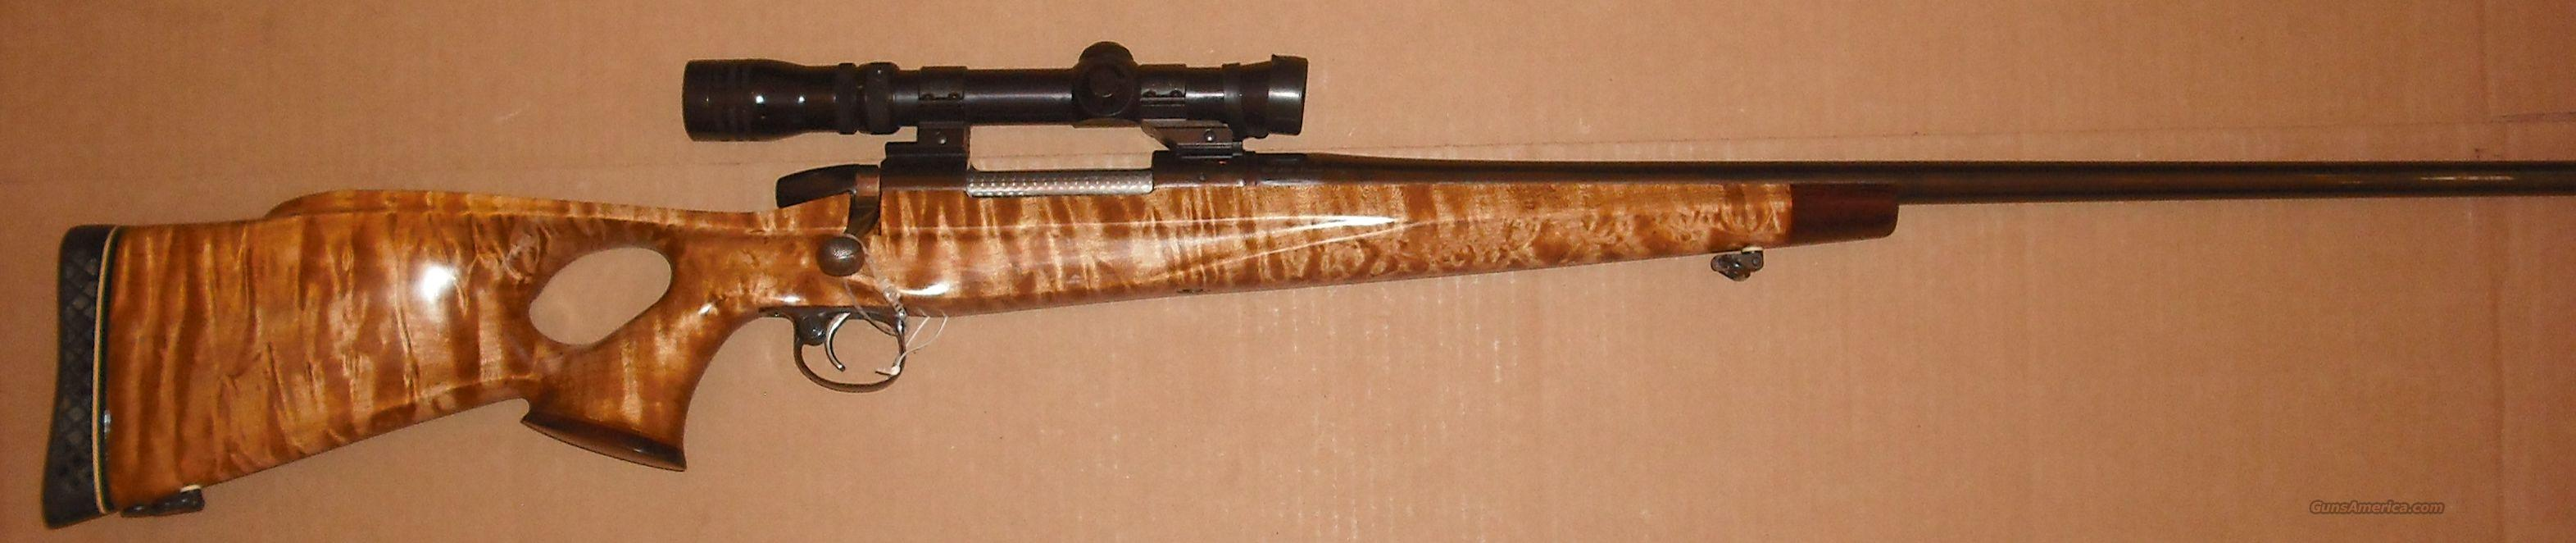 Harry Lawson Custom in 308 Norma Mag.  Guns > Rifles > Remington Rifles - Modern > Model 700 > Sporting